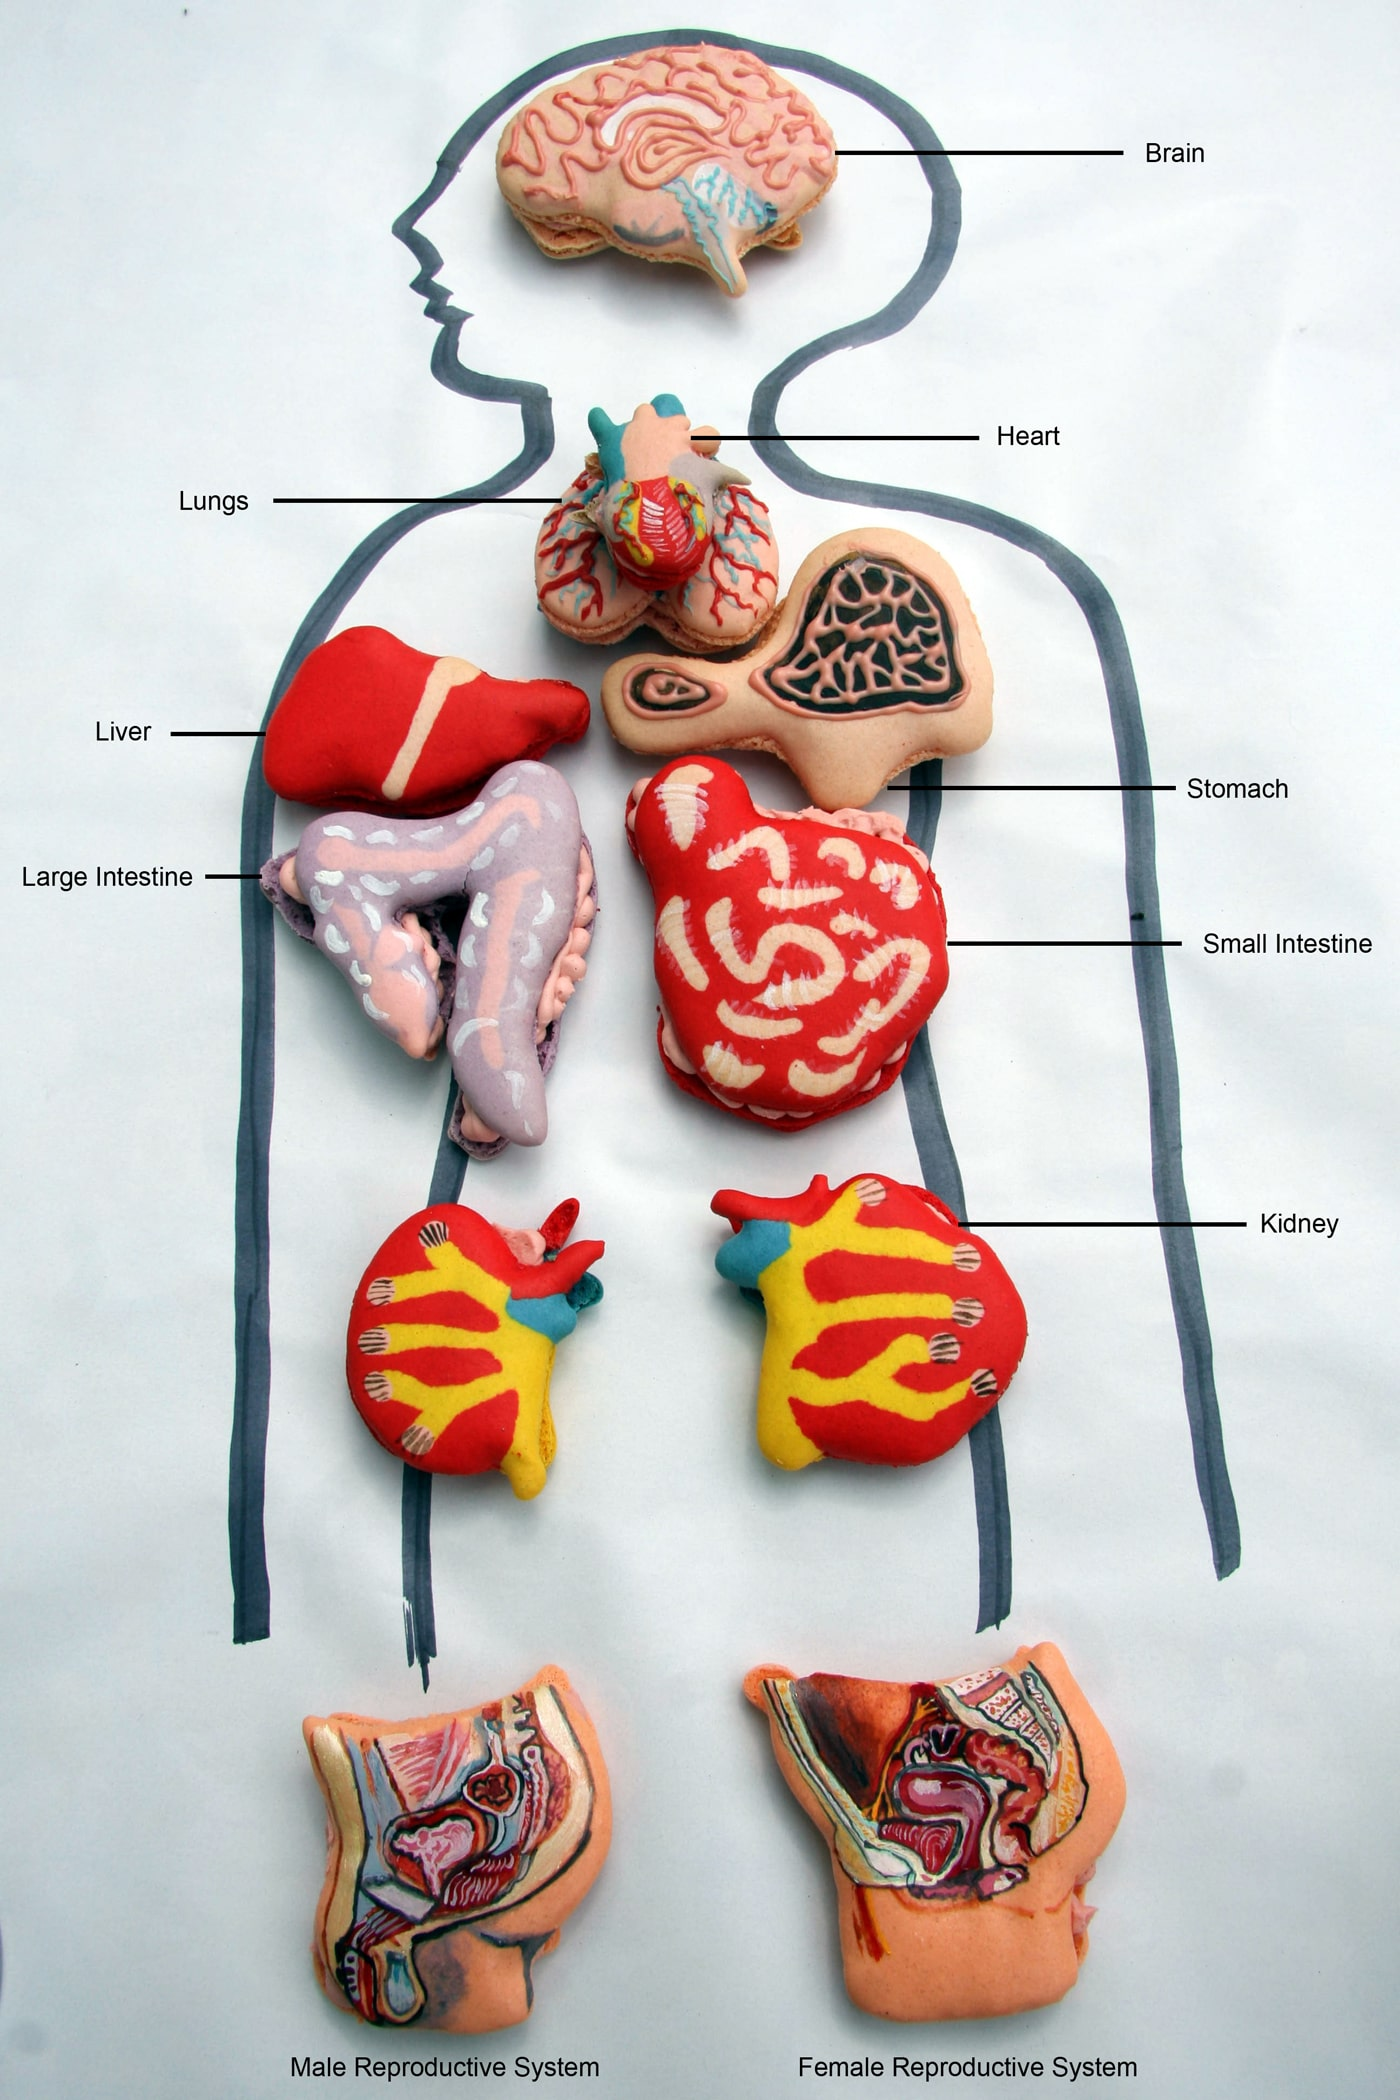 Anatomically Correct Human Organ Pastries & Chocolate Teeth